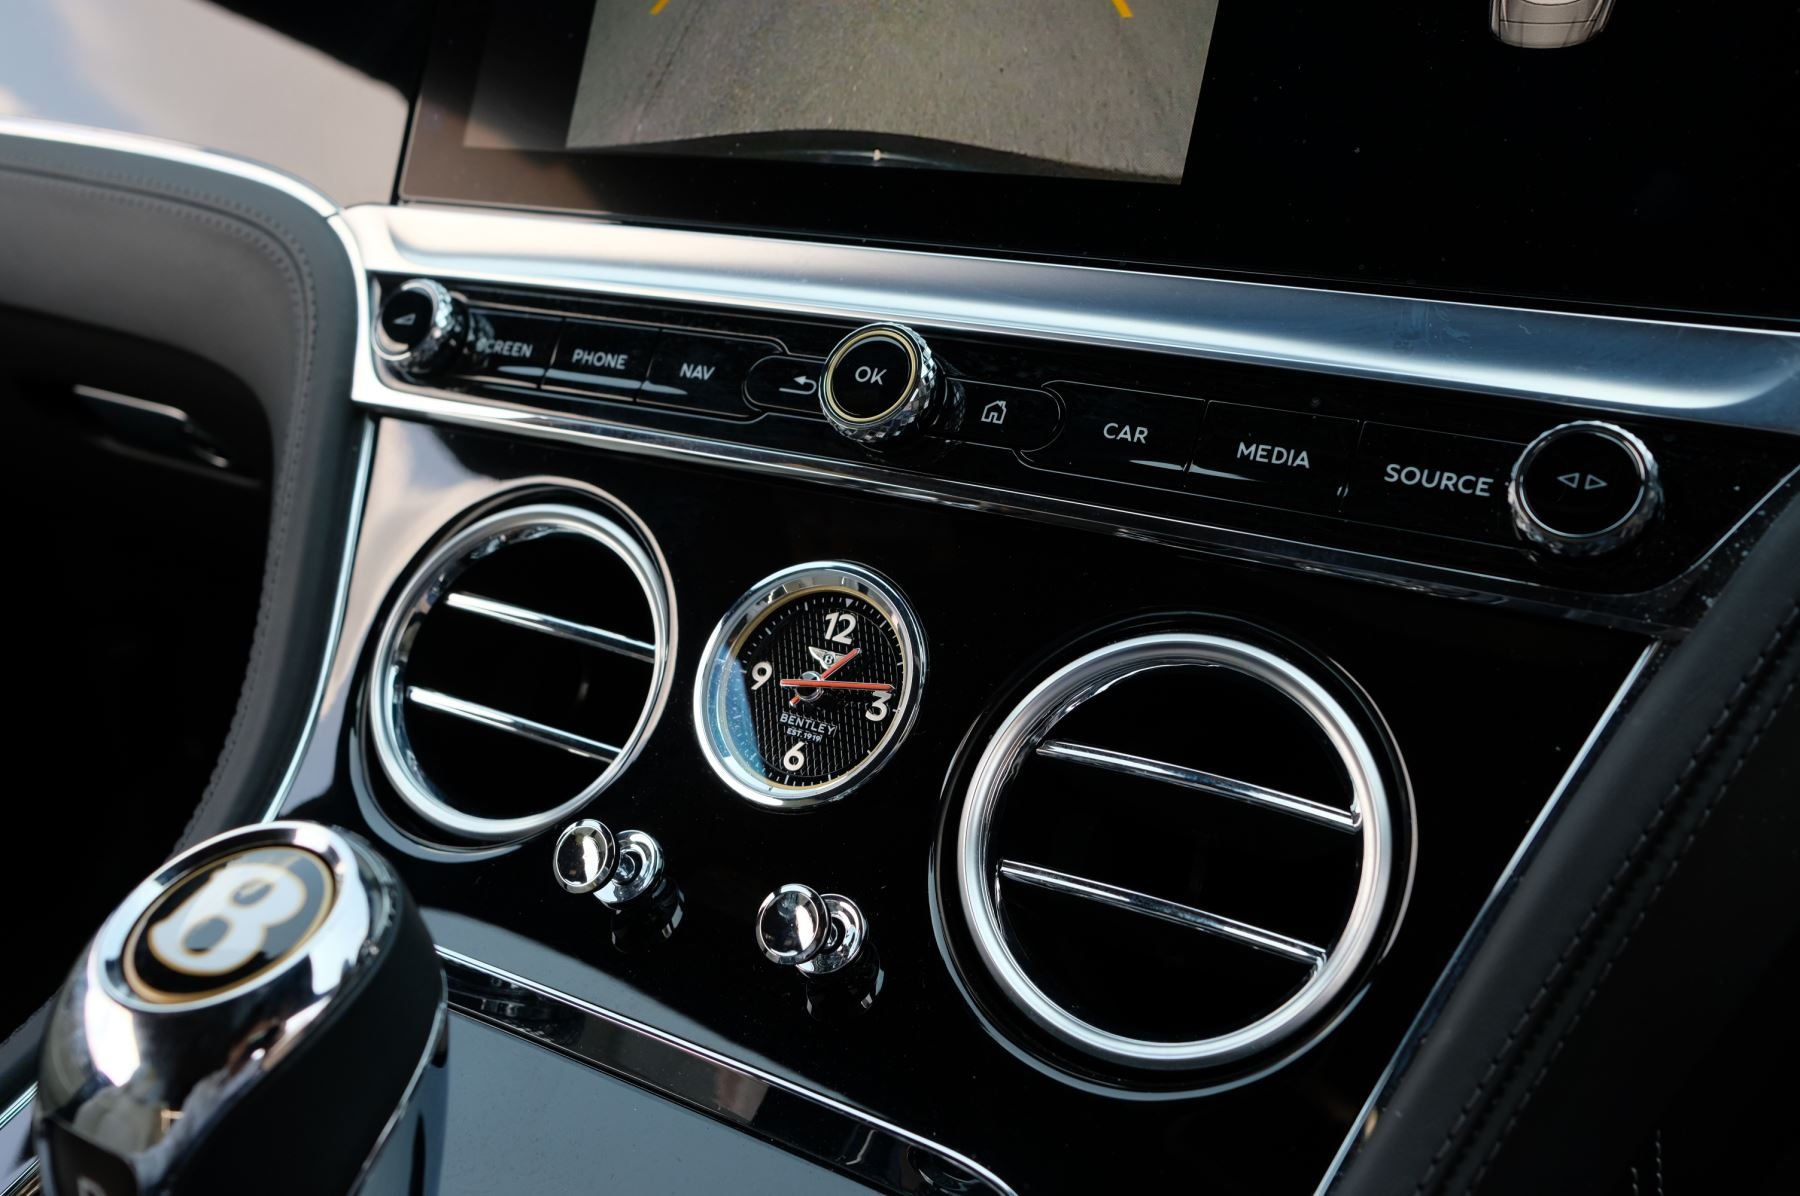 Bentley Continental GTC 6.0 W12 - Mulliner Driving Specification and Centenary Specification image 19